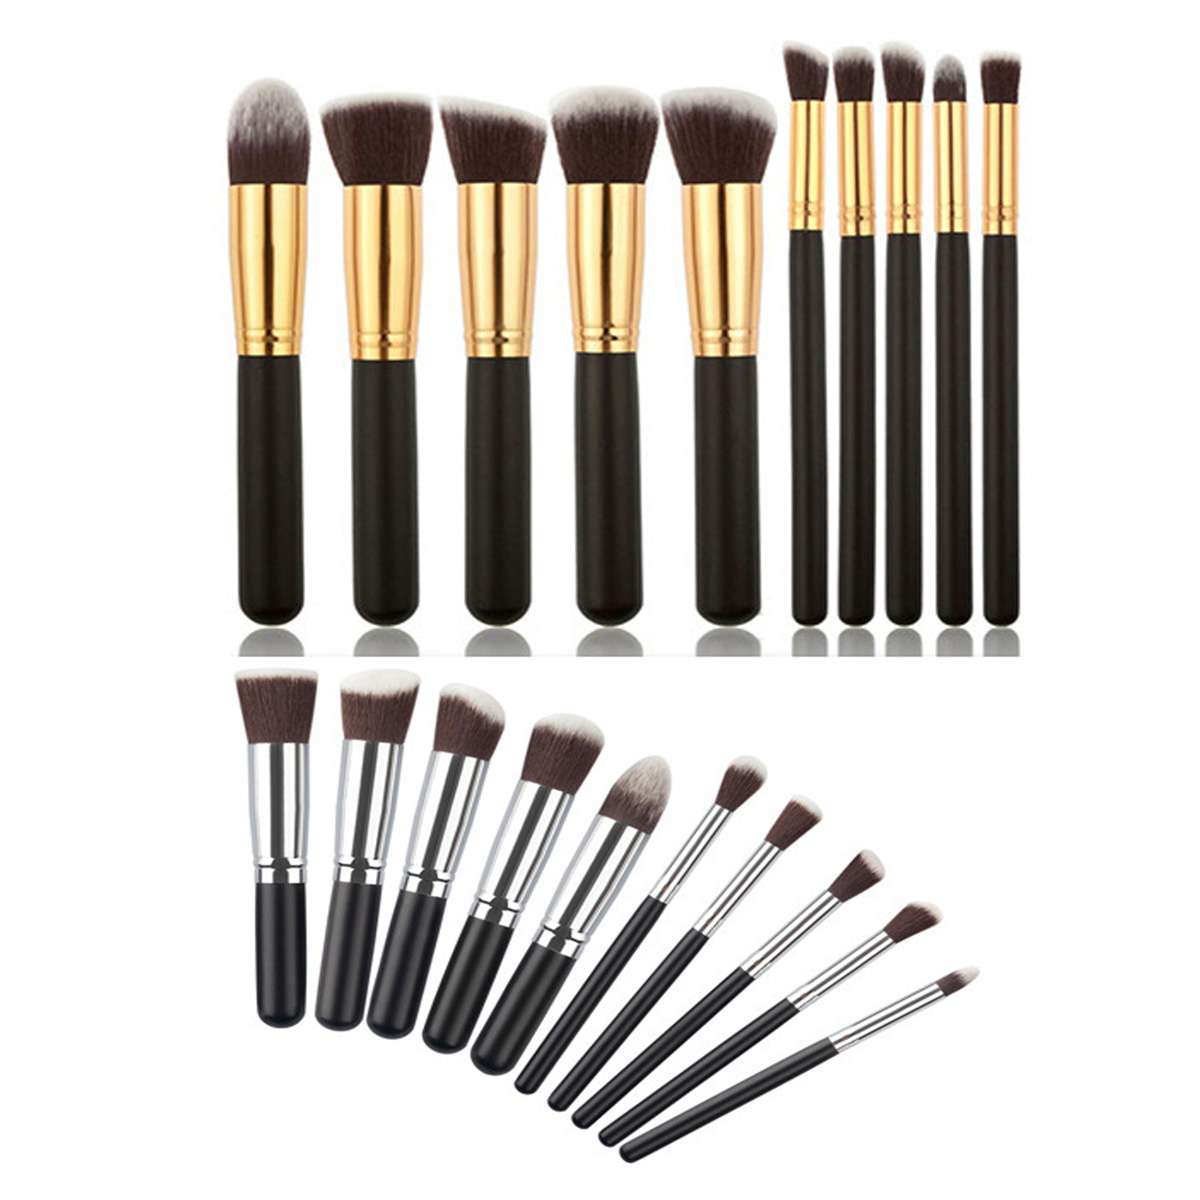 10pcs Professional Black/Gold Makeup Brushes Set Beauty Foundation Kabuki Brush Cosmetics Make up Brushes Kit Tools professional 10pcs blue silver jessup makeup brushes sets beauty kit foundation kabuki precision brush cosmetics make up tools